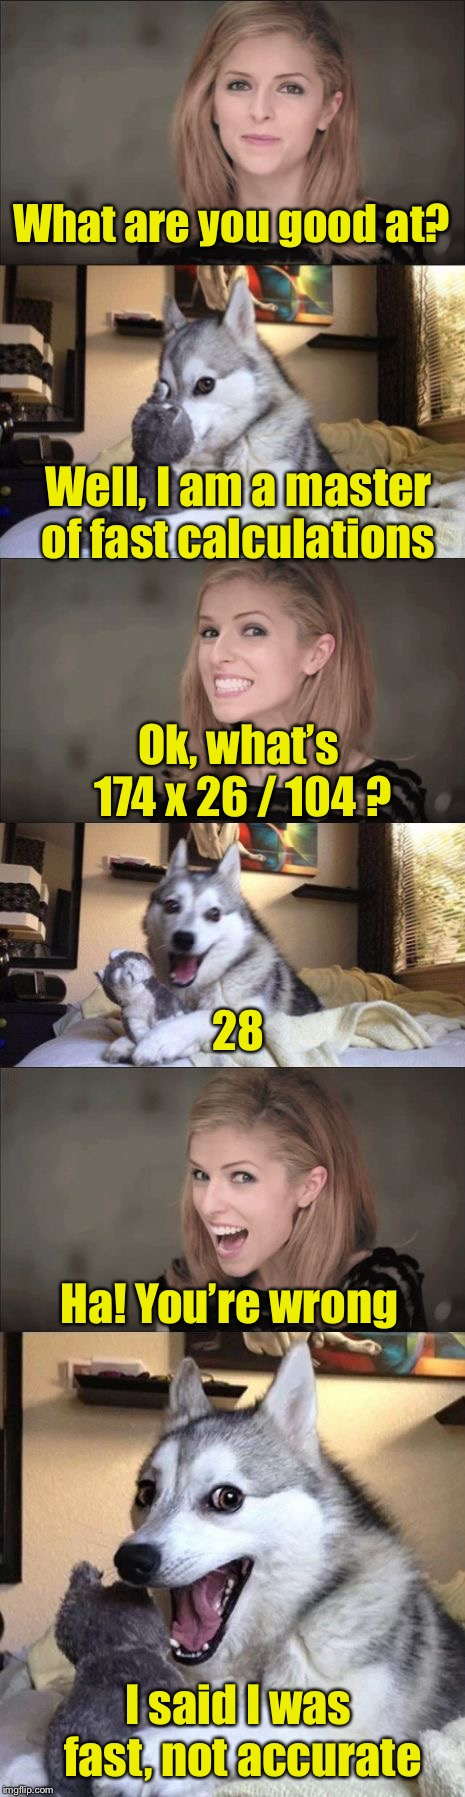 Anna and Bad Pun Dog Work Together | What are you good at? I said I was fast, not accurate Well, I am a master of fast calculations Ok, what's 174 x 26 / 104 ? 28 Ha! You're wro | image tagged in anna and bad pun dog work together | made w/ Imgflip meme maker